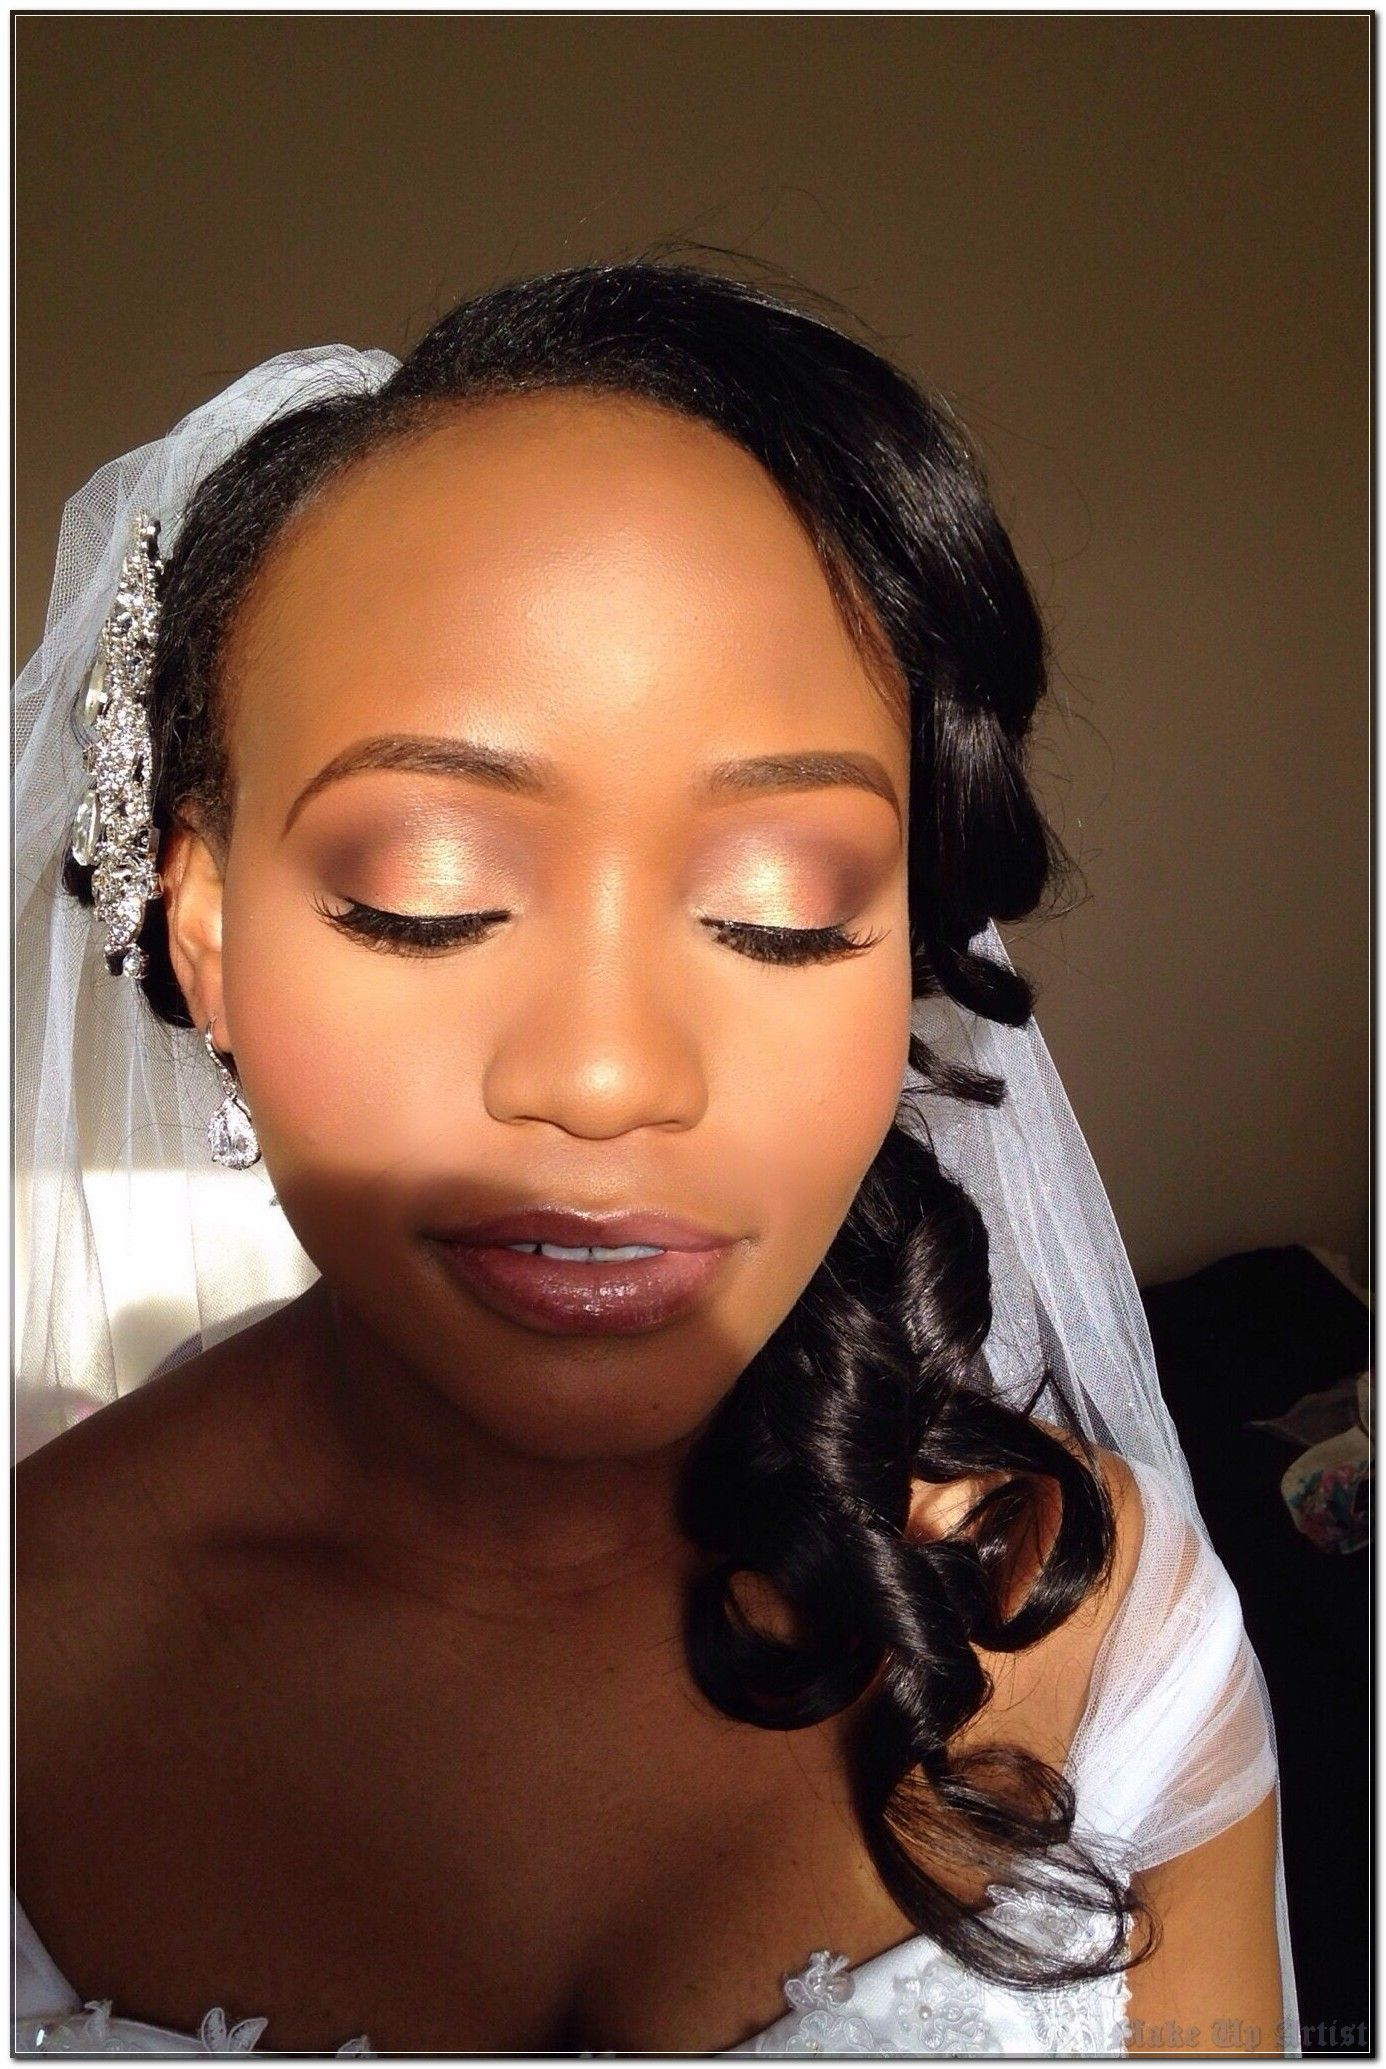 How To Start A Business With Make Up Artist